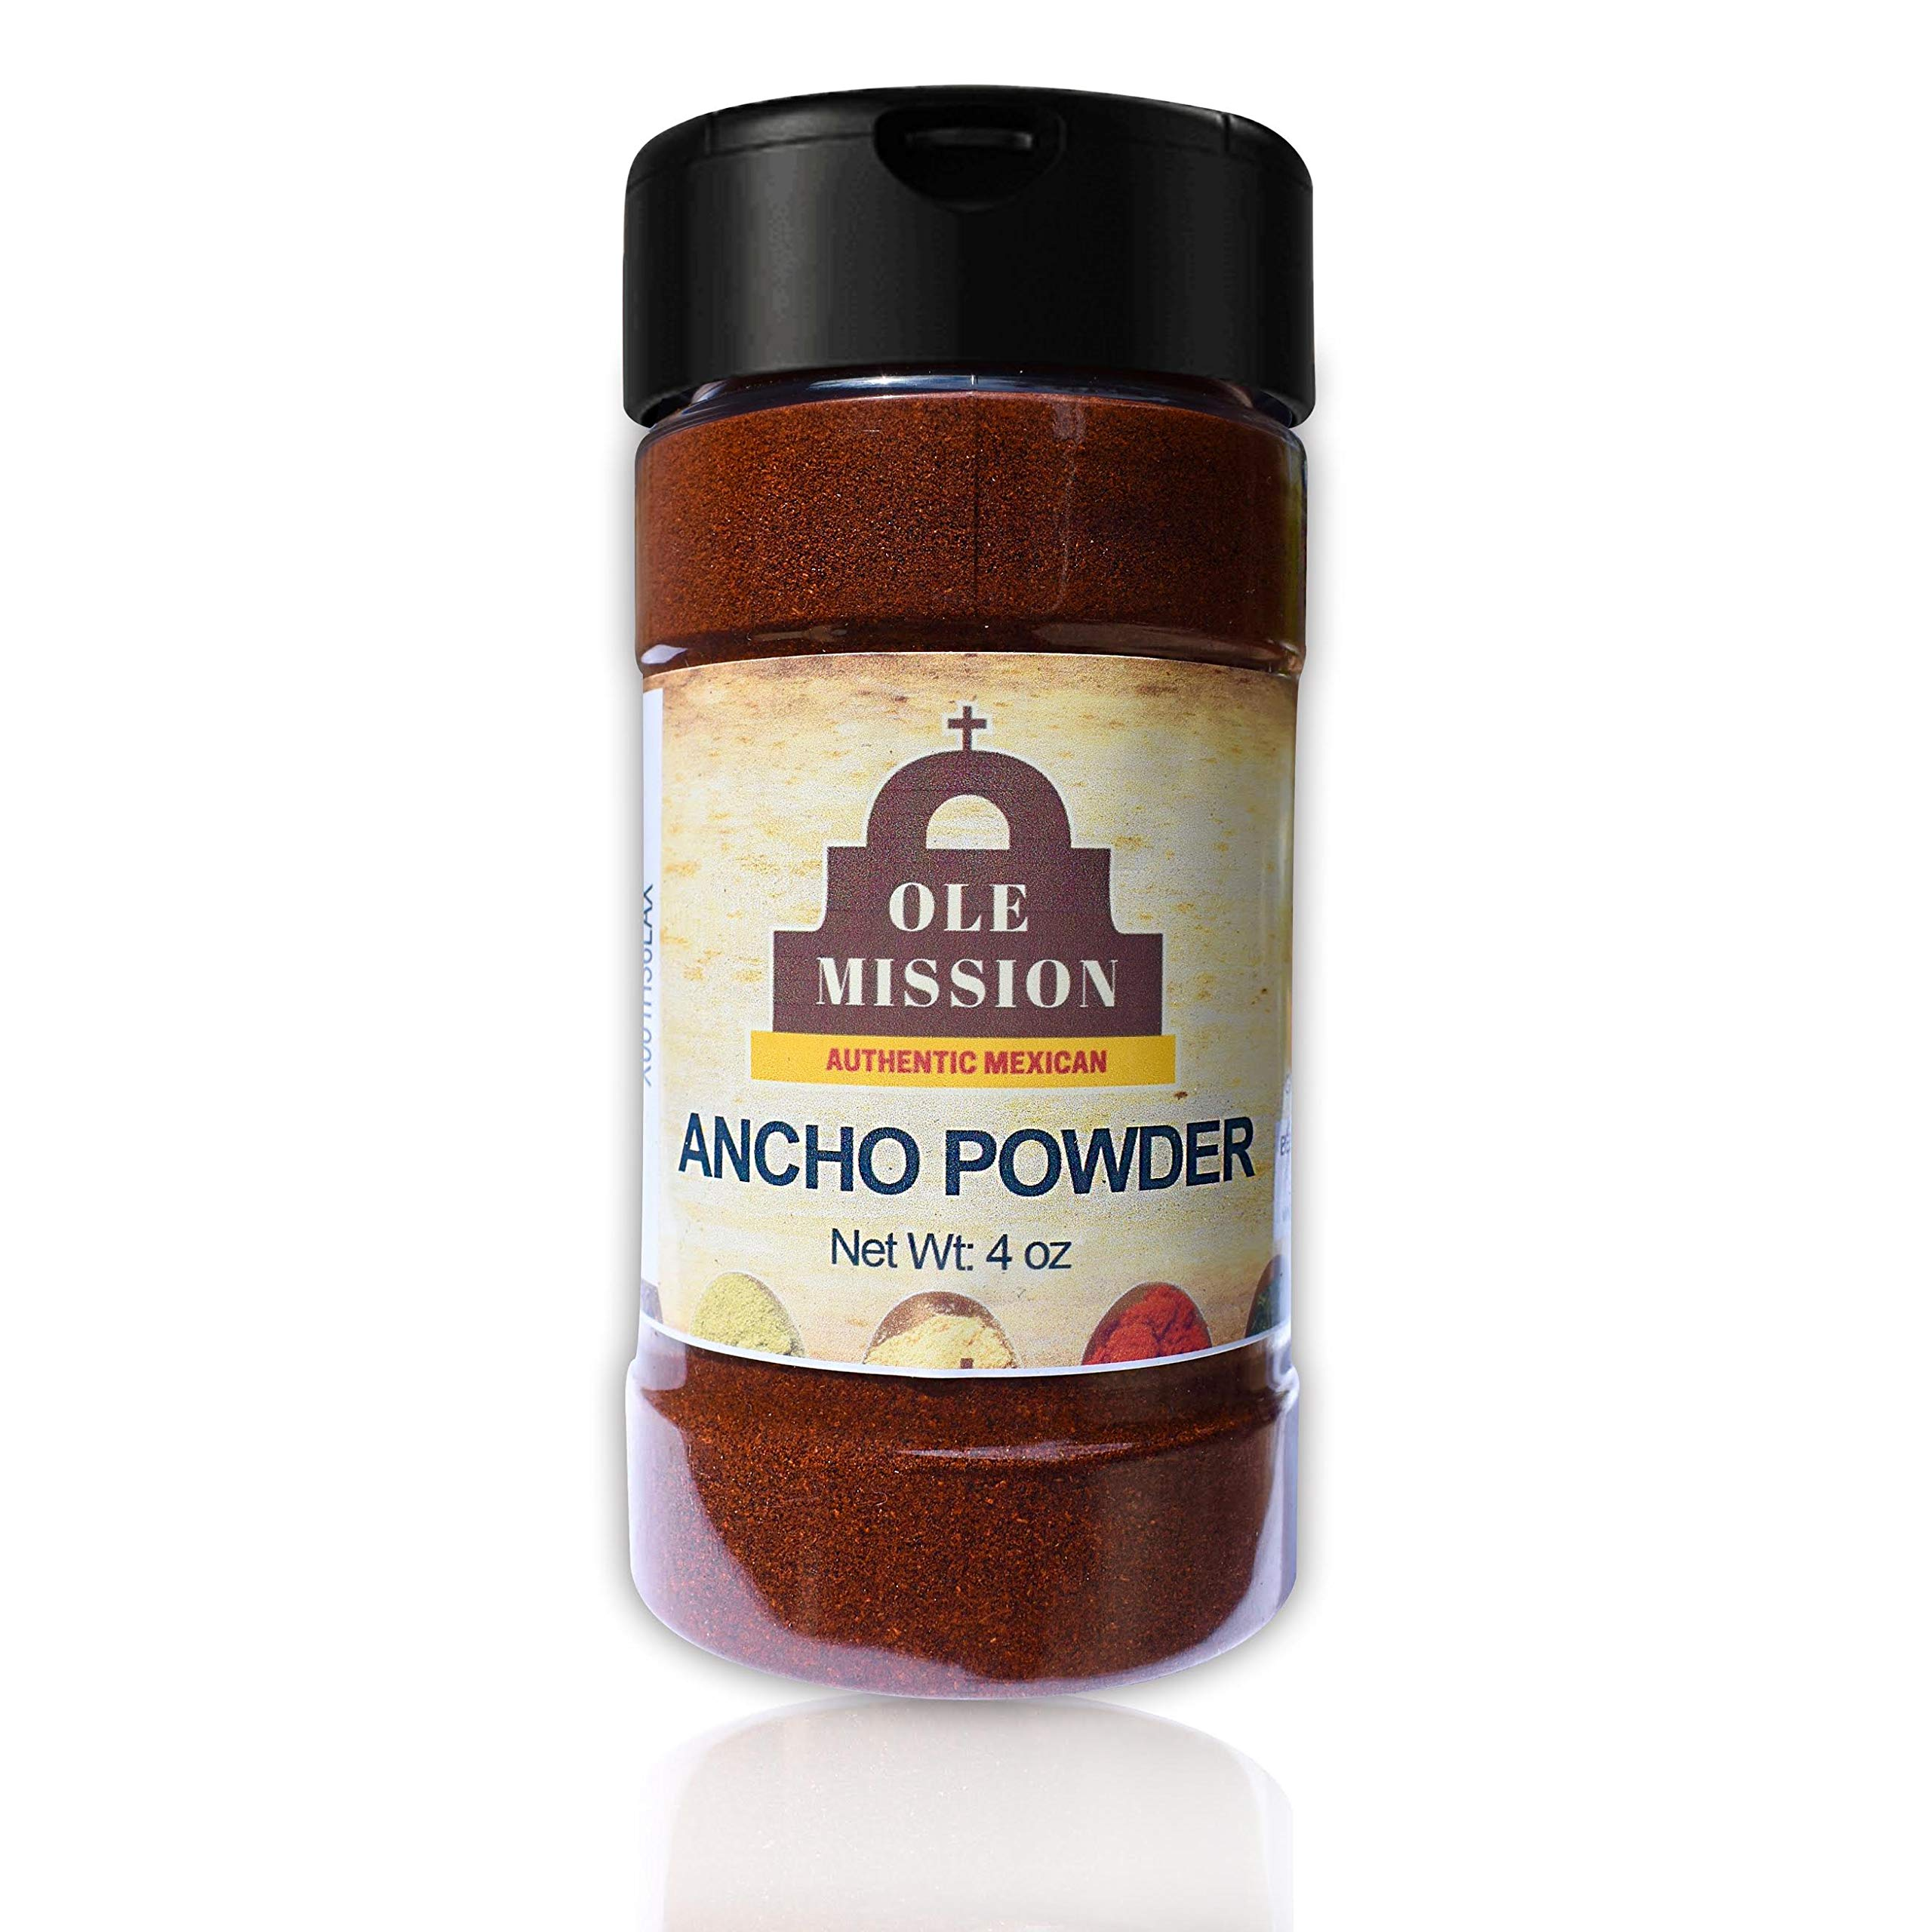 Ancho Chile Powder 4 oz Ounce Ground Chili Natural Seasoning Great for Mexican Recipes by Ole Mission